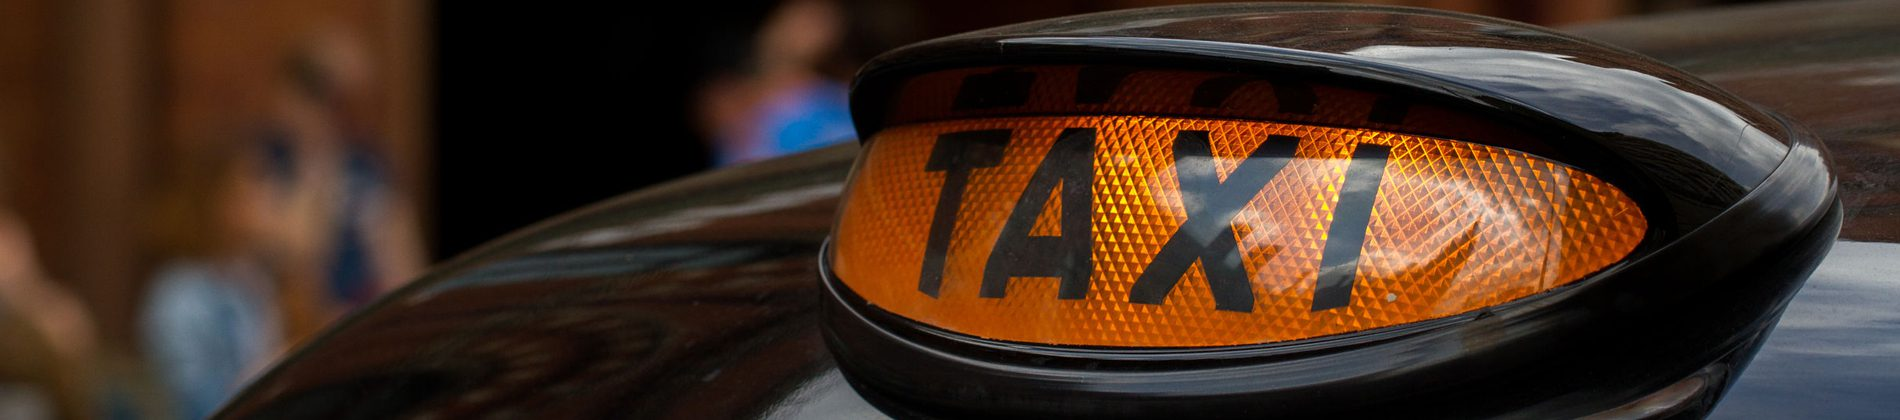 Taxi insurance - Ashbourne Insurance